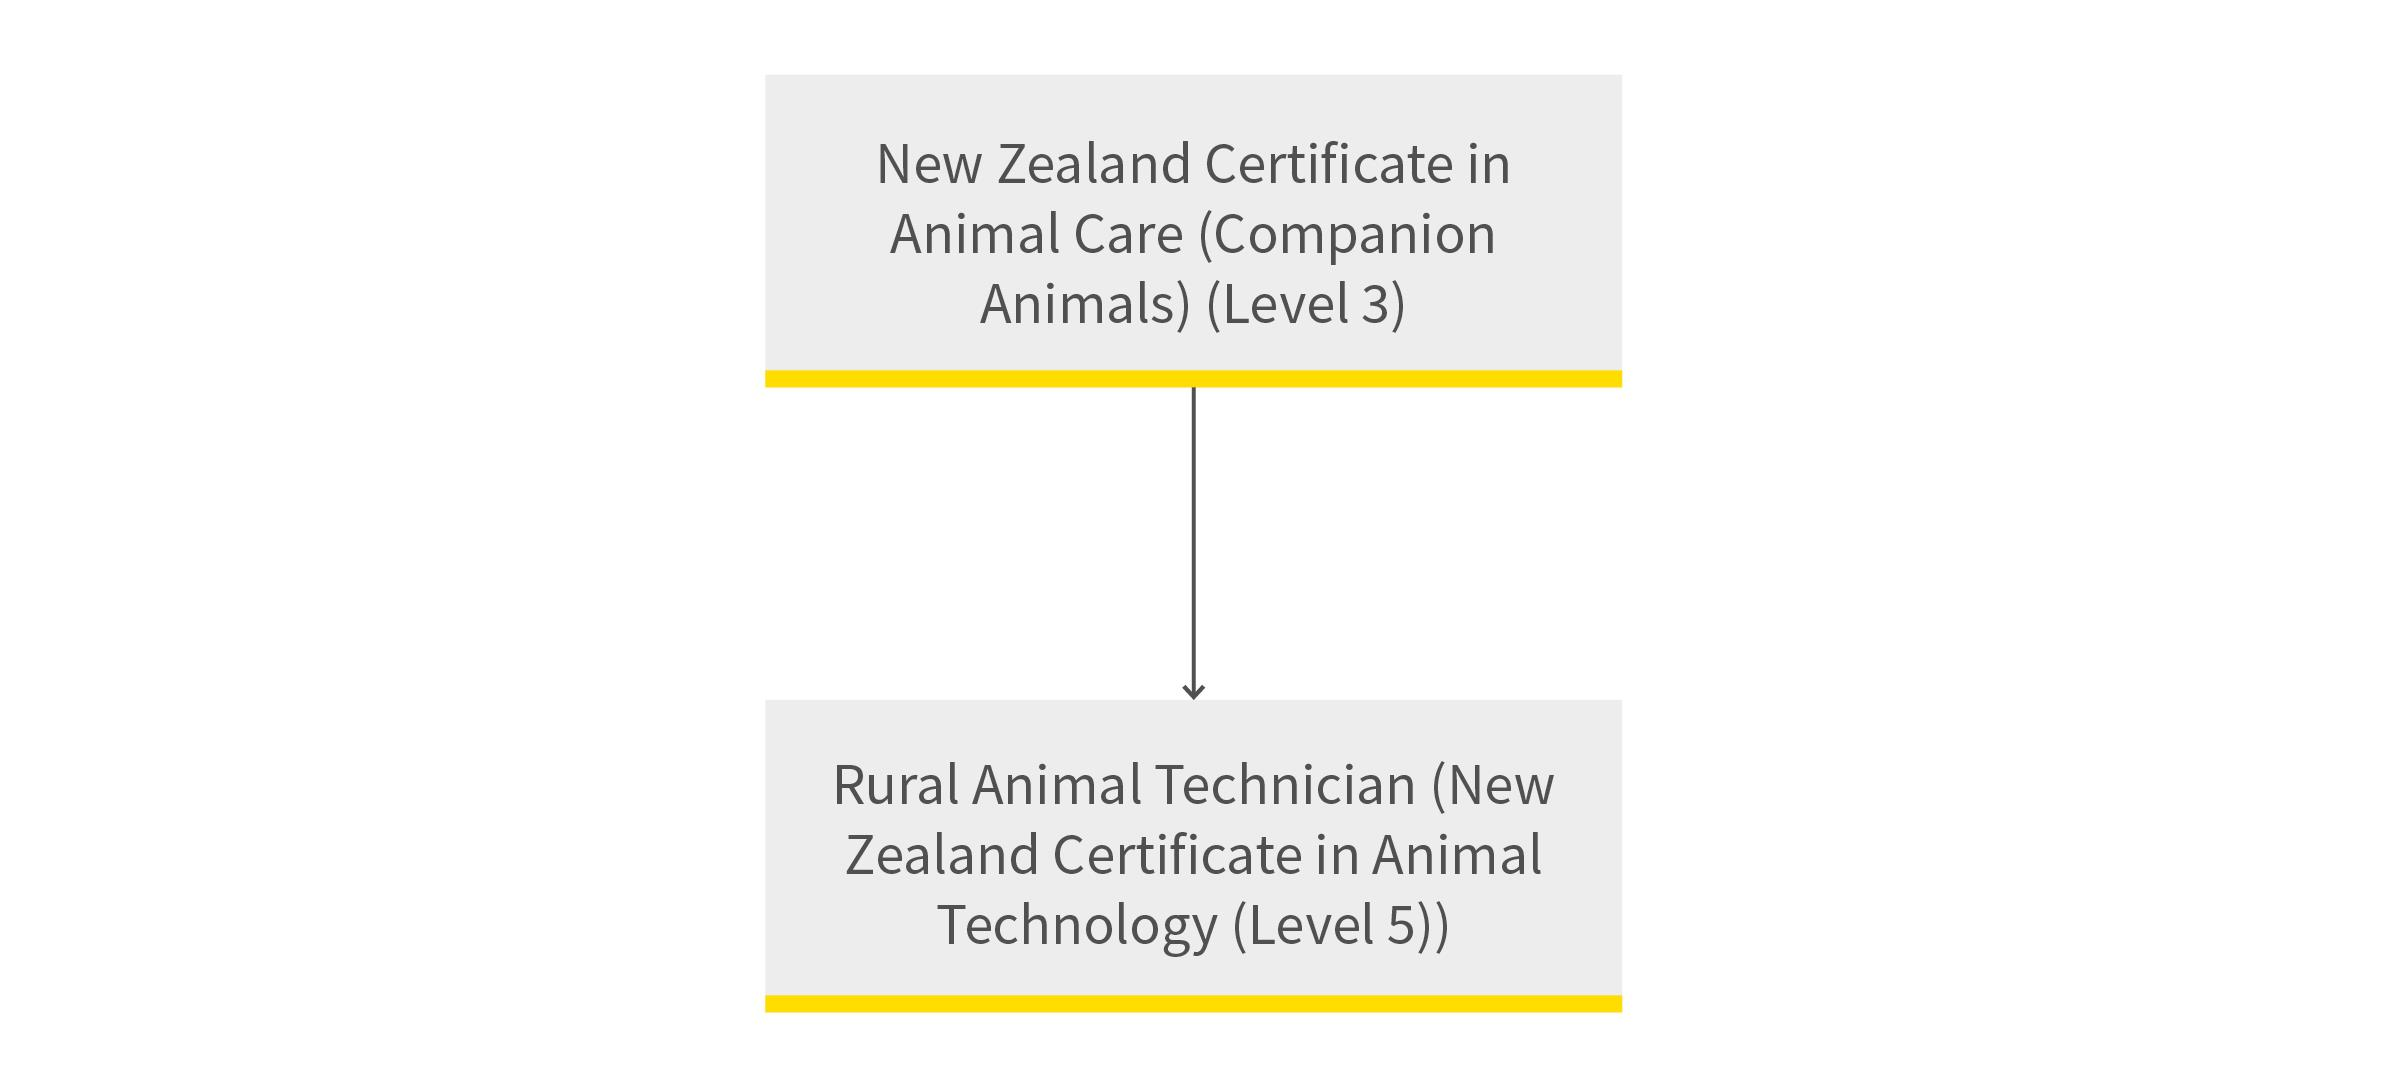 Animal Care and Rural Technology pathway diagram